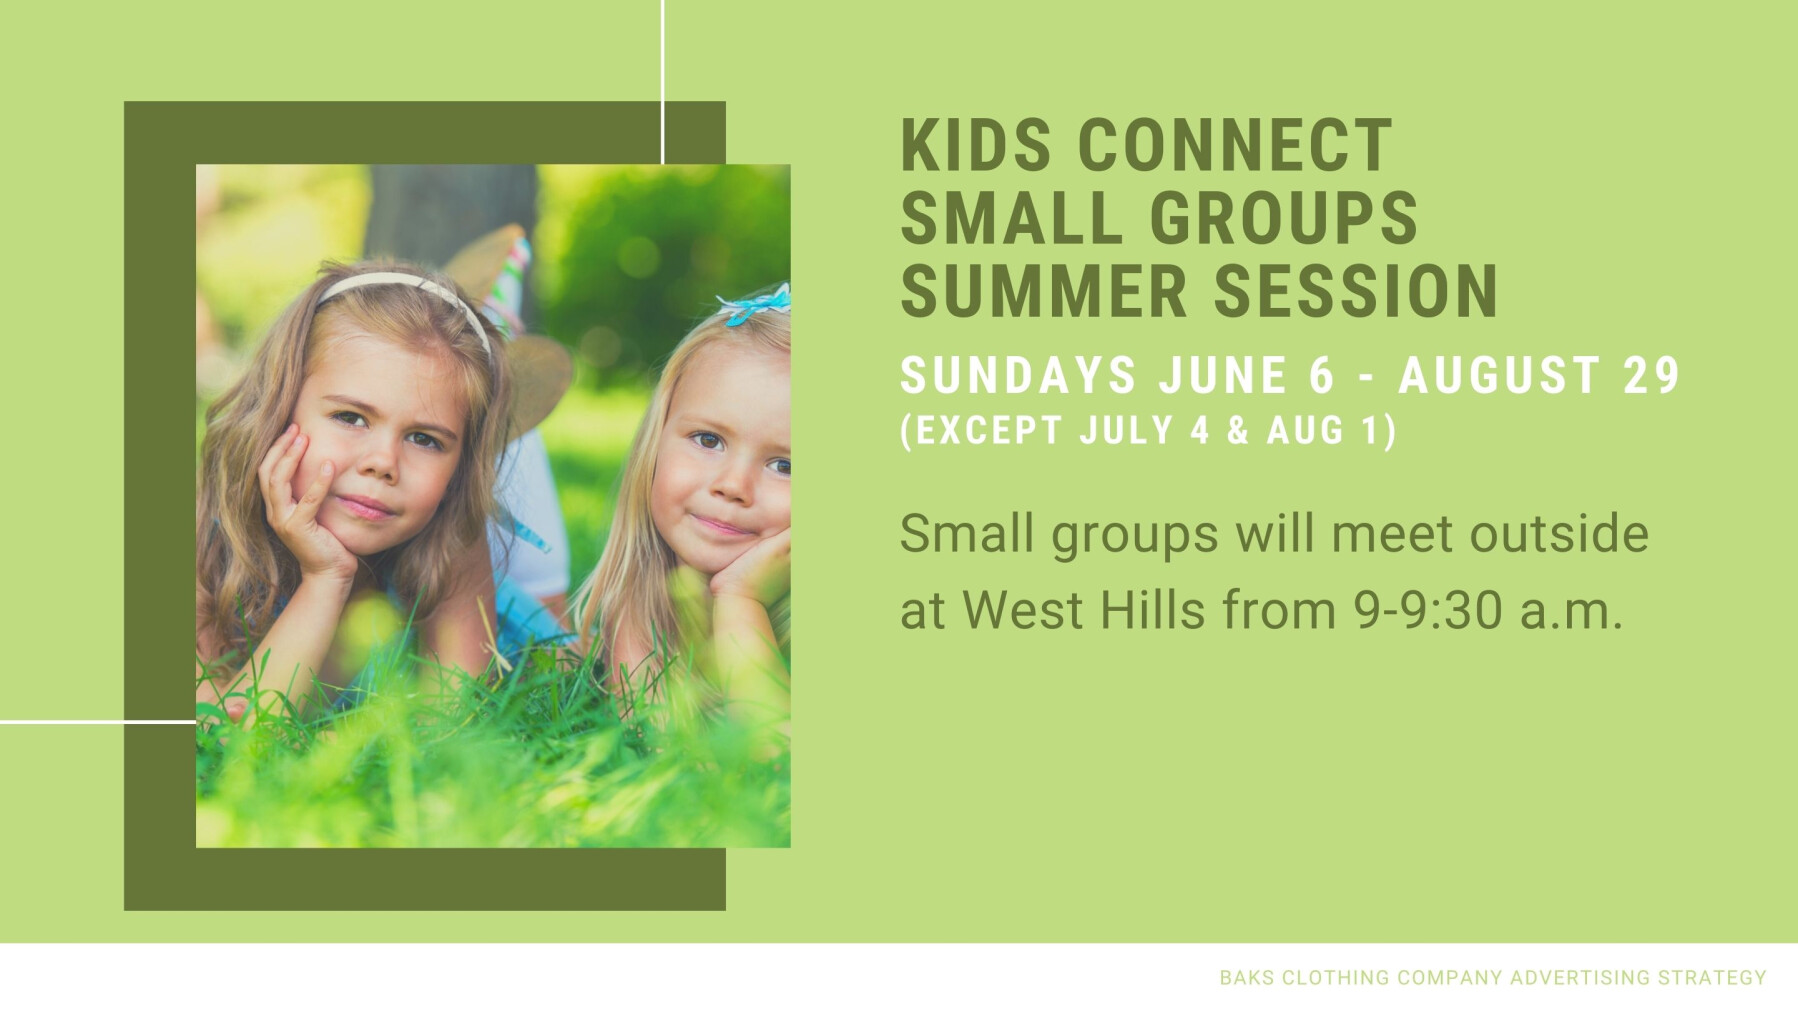 Kids Connect Small Groups Summer Session